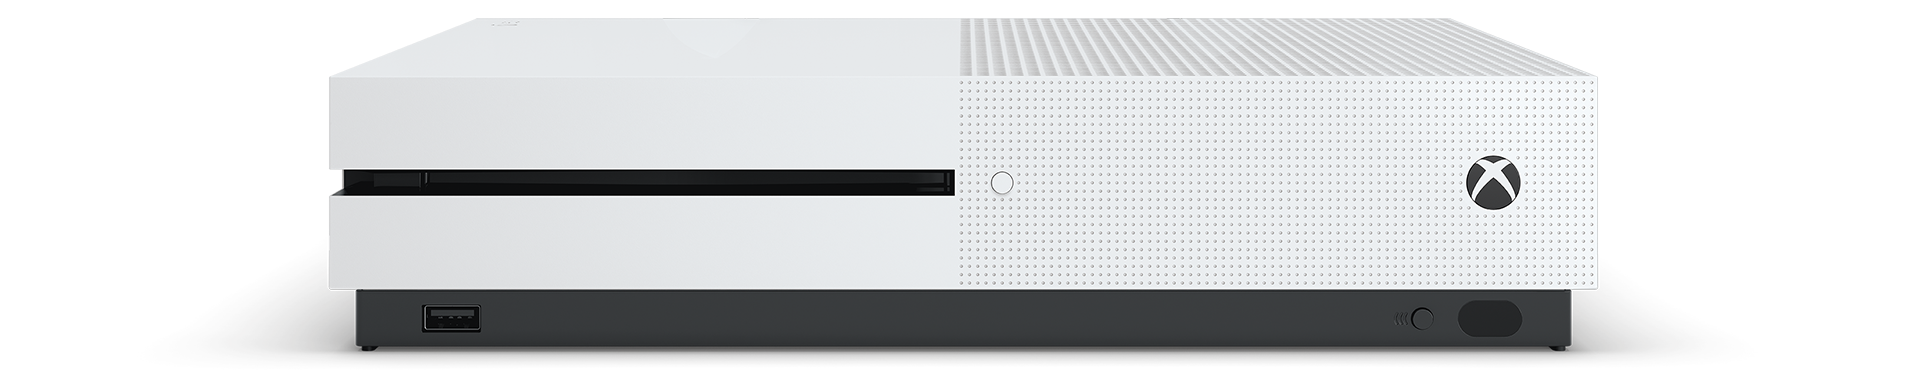 Microsoft Xbox One S 500GB White PAL Price In Pakistan